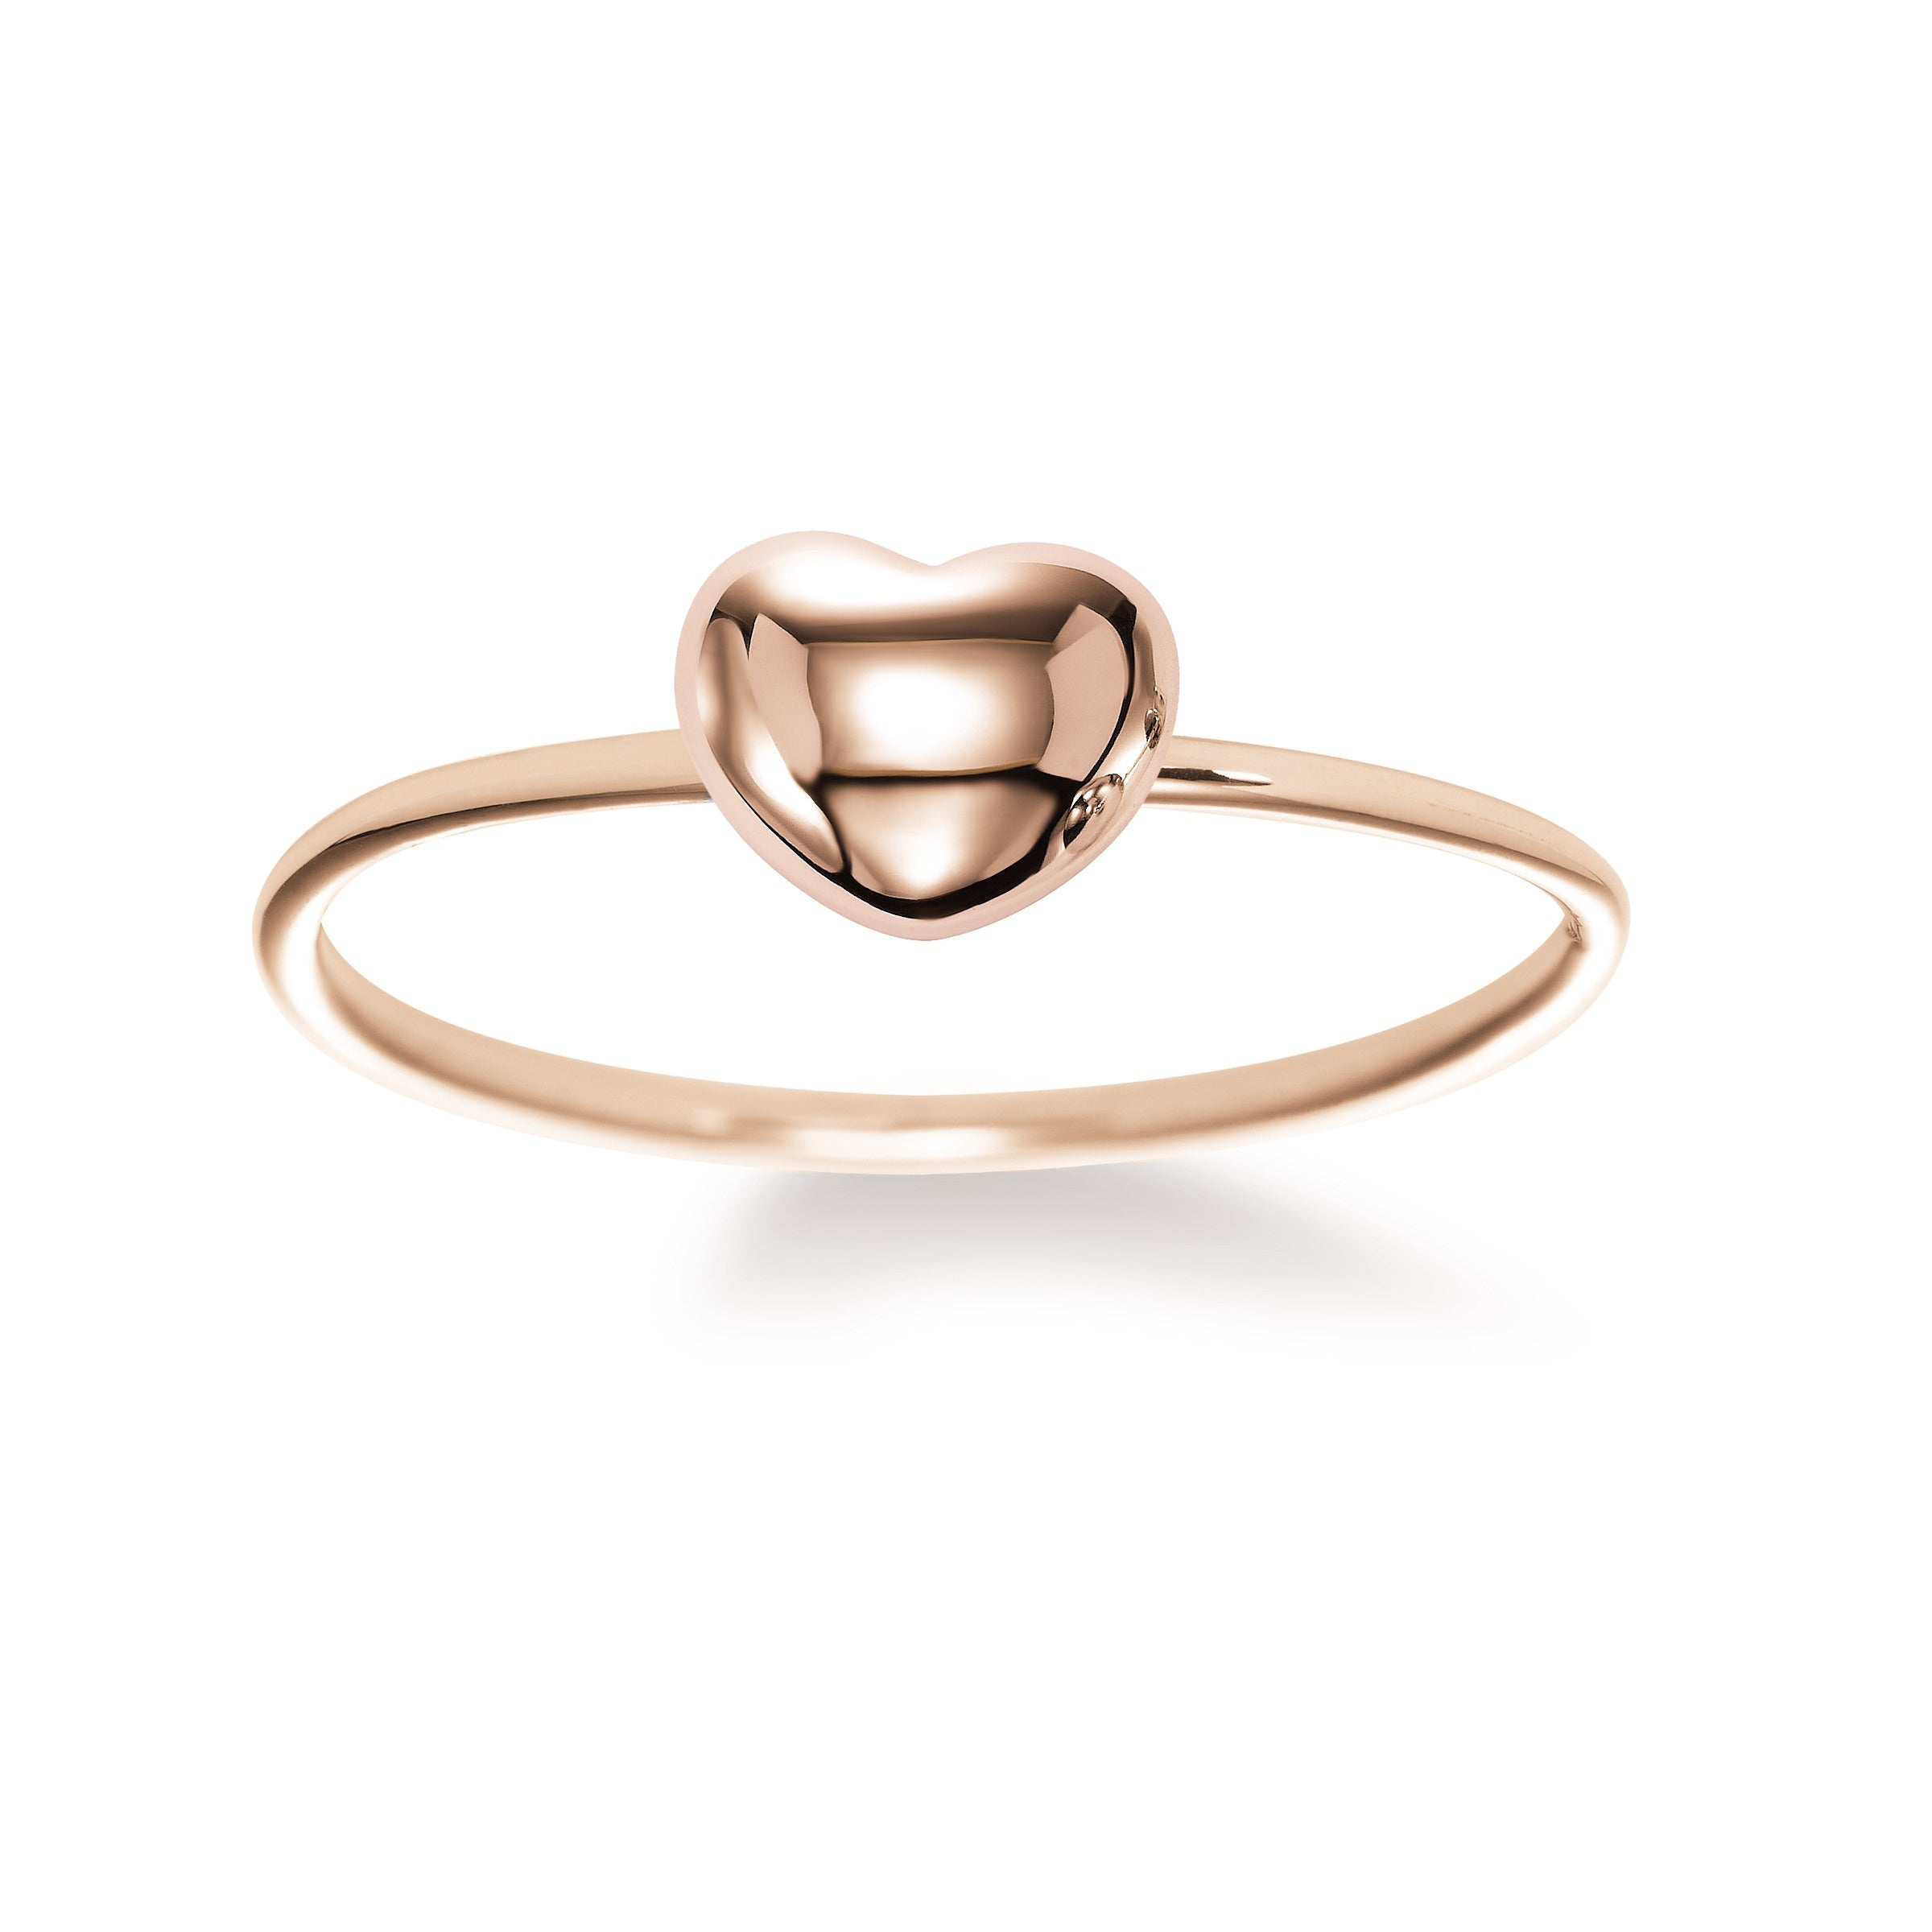 Shiny Puffed Heart Ring, 18K Rose Gold